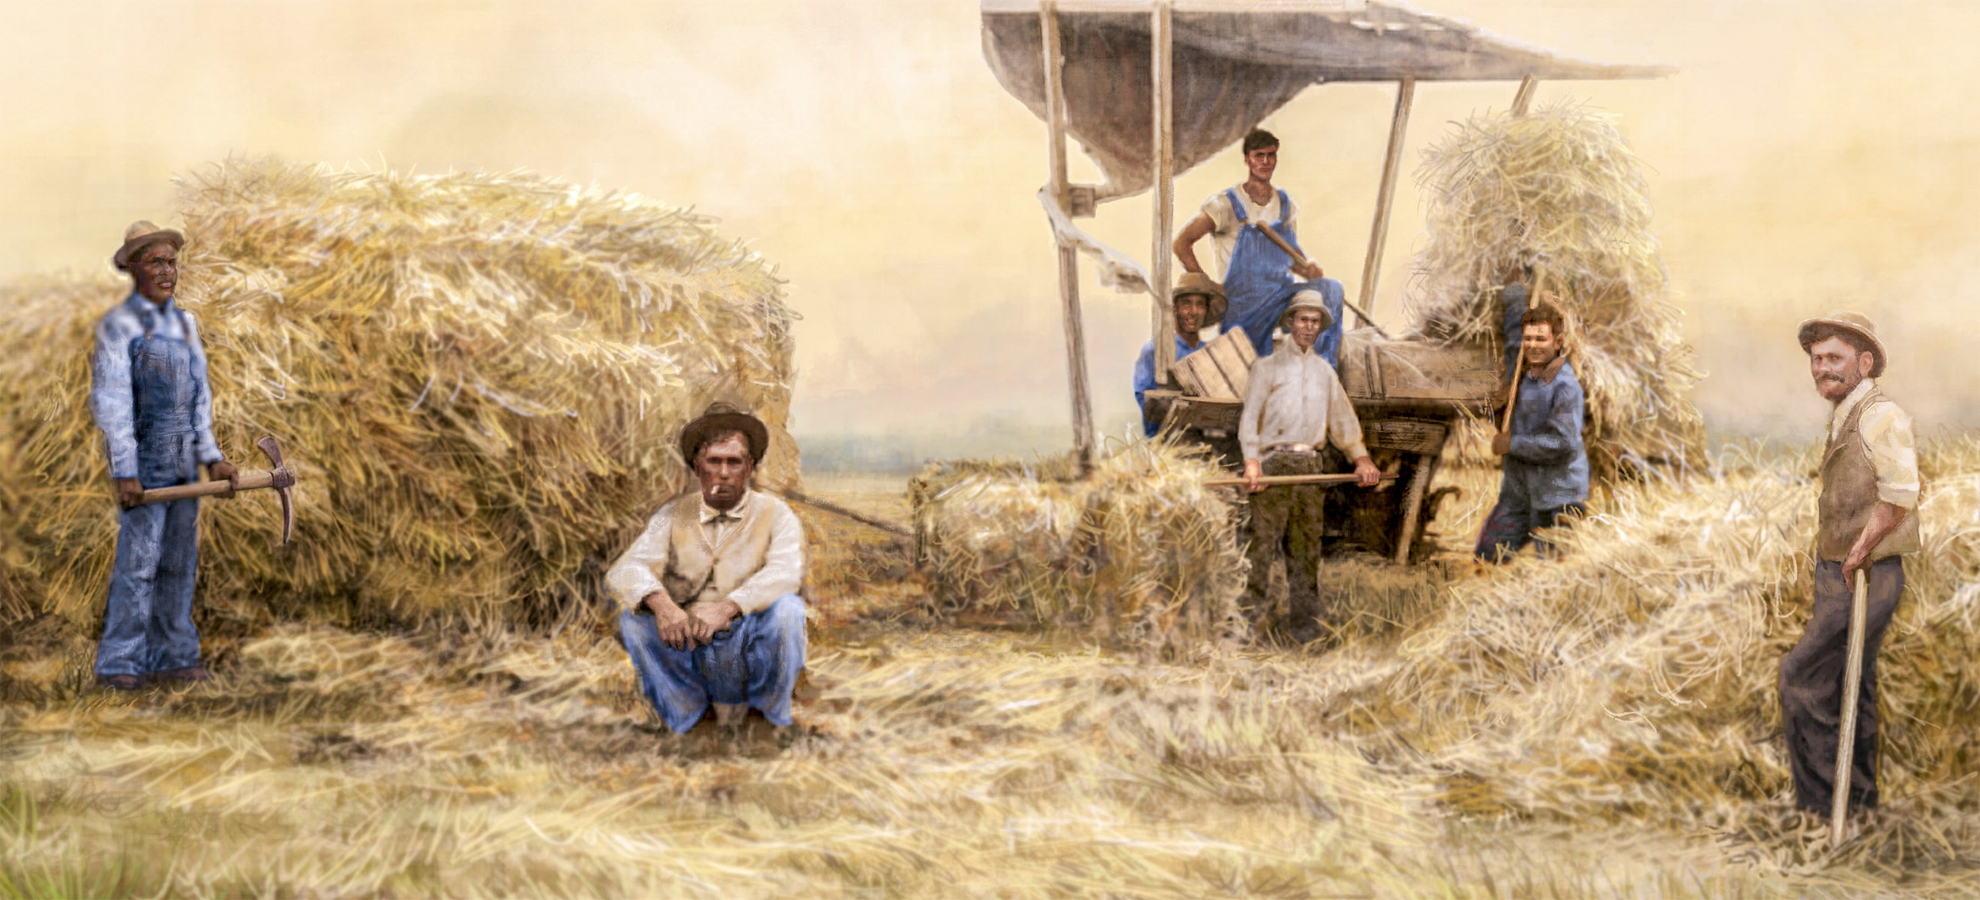 """Agricultural Mural""- Center right • 34' by 9' • Digital • Forney Spellman Museum • Forney, TX. © KT"